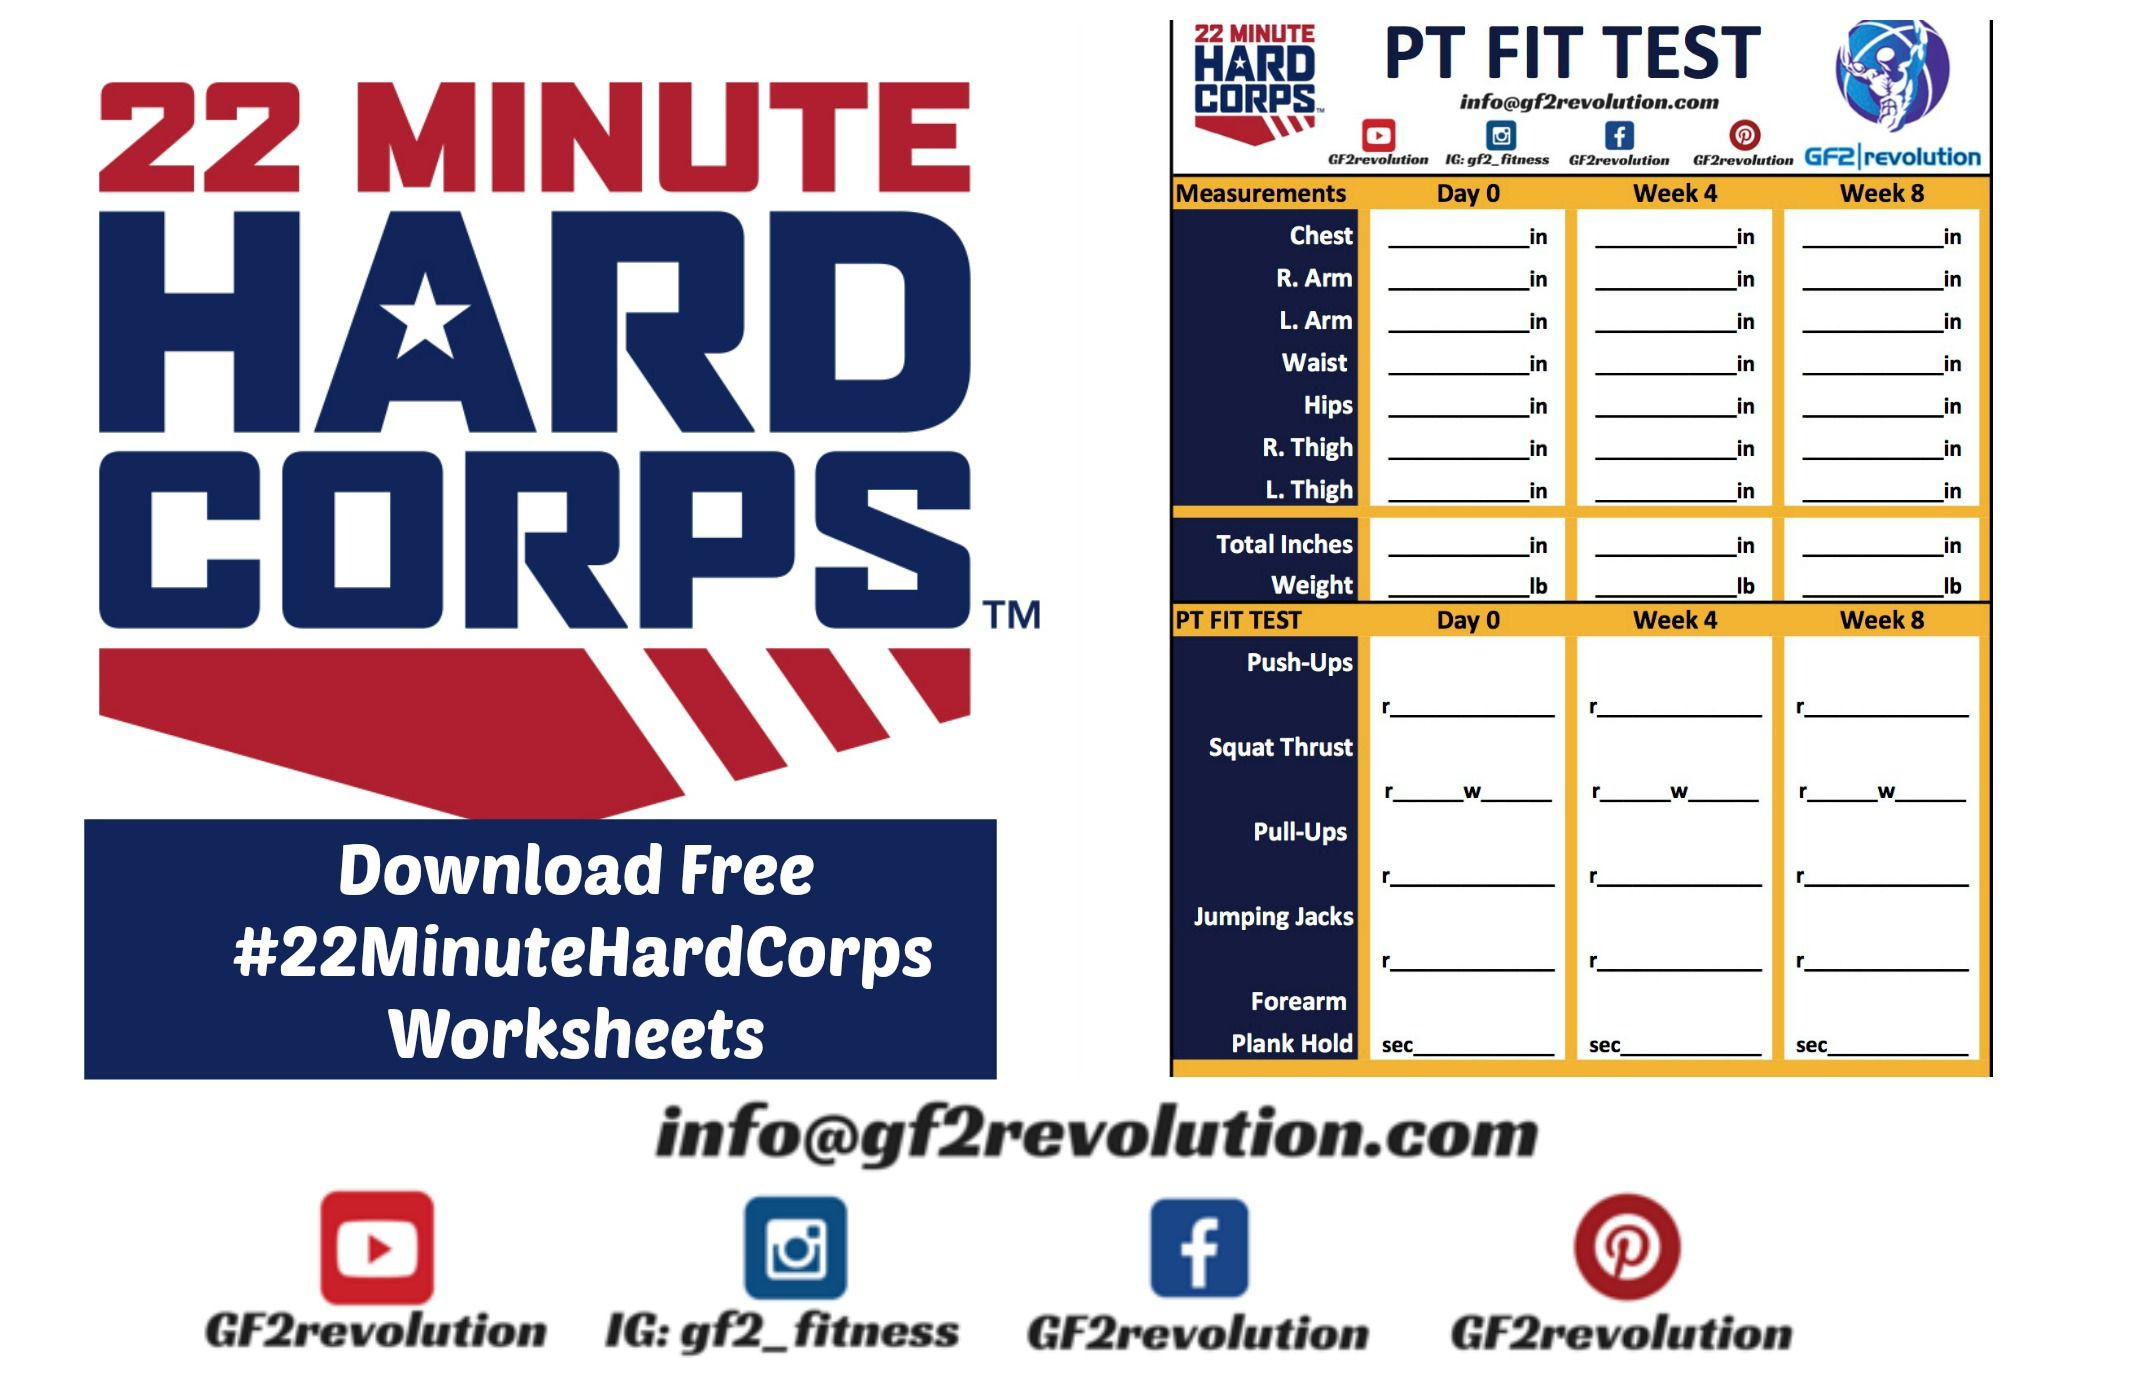 Free Download Of 22minutehardcorps Worksheets From